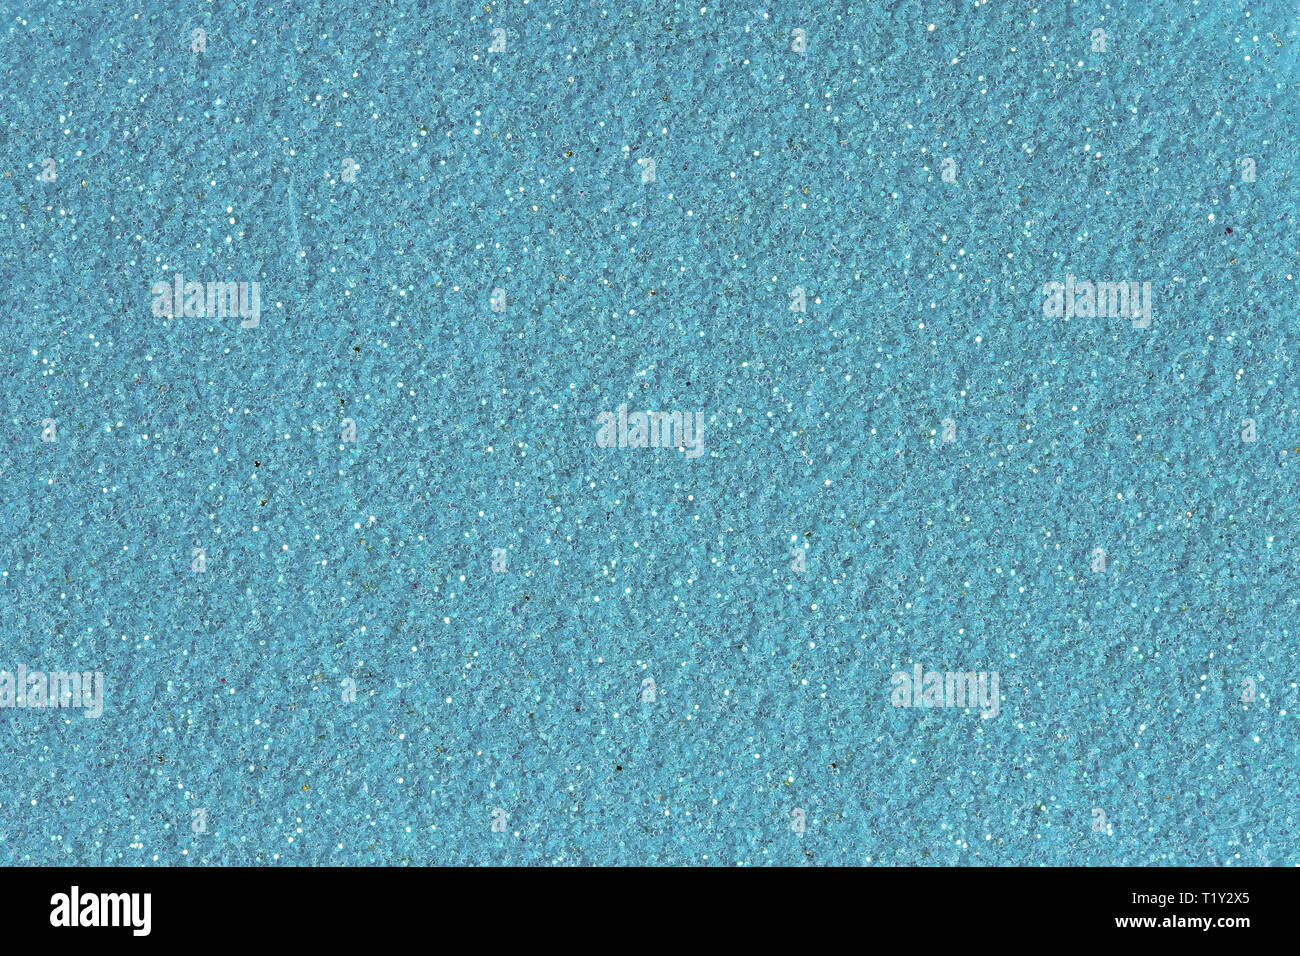 Blue glitter texture christmas abstract background. Low contrast photo. - Stock Image